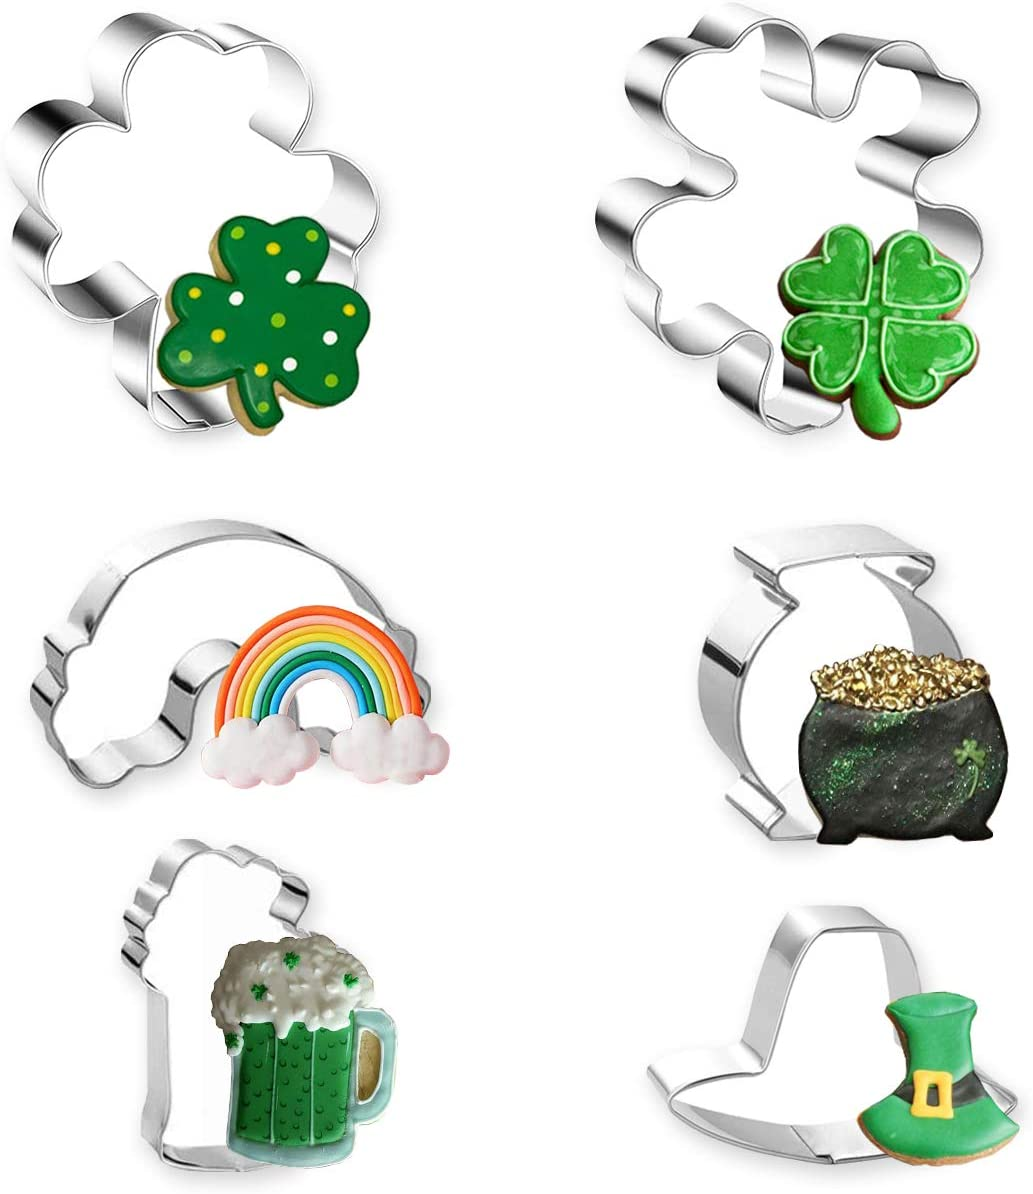 St. Patrick's Day Cookie Cutter, 6 Pcs Cookie Cutters Set Shamrock, Four Leaf Clover, Beer Mug, Rainbow, Top Hat and Pot of Gold Stainless Steel Biscuit Cutters for St. Patrick's Day Irish Party